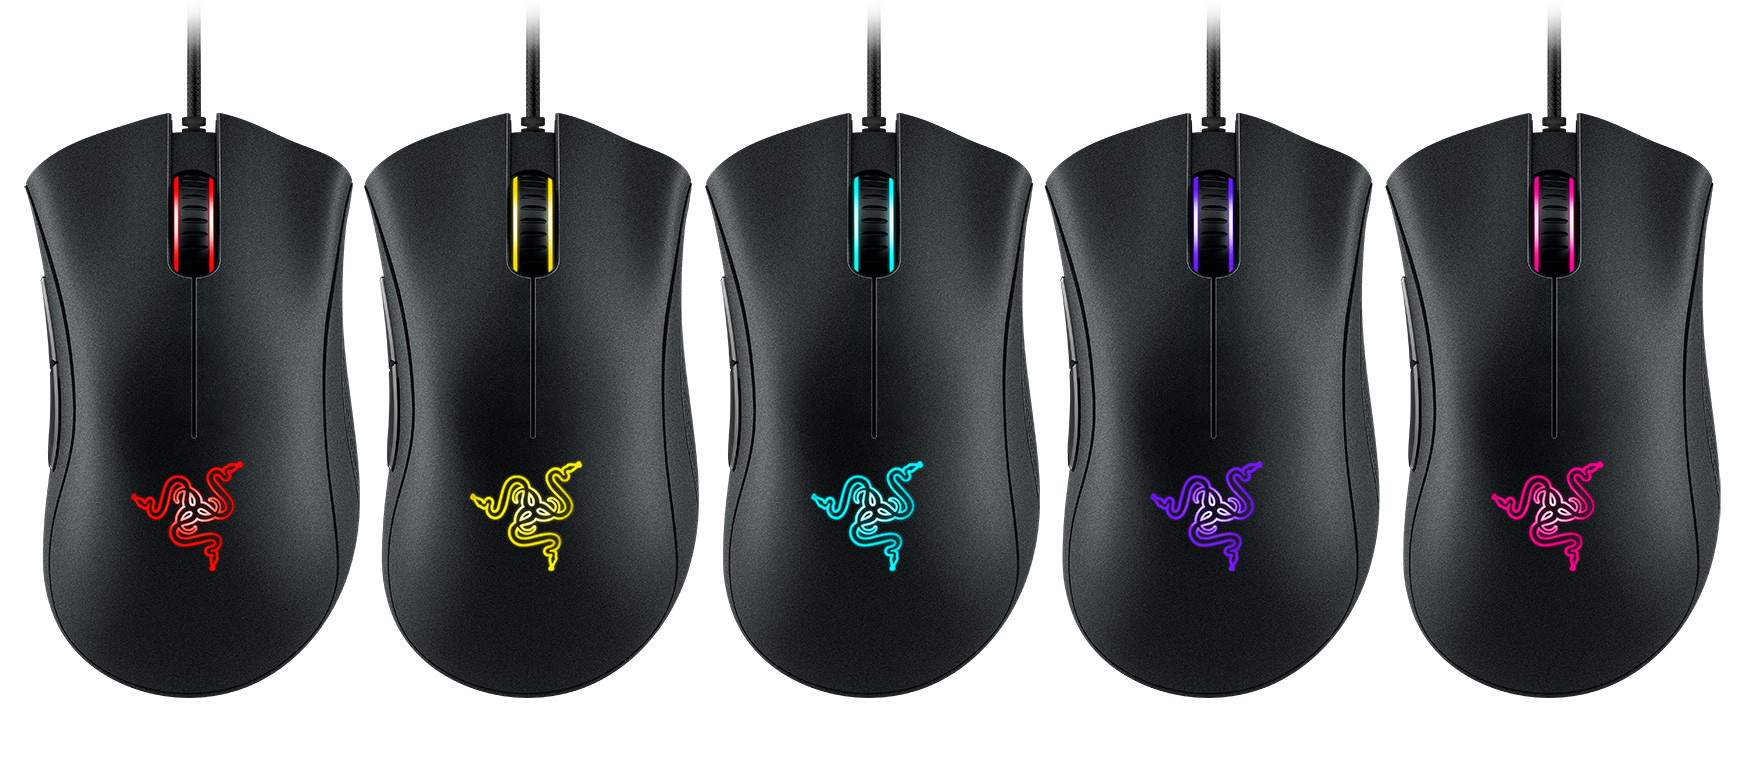 Razer DeathAdder Chroma Gaming Mouse Launched | TechPowerUp